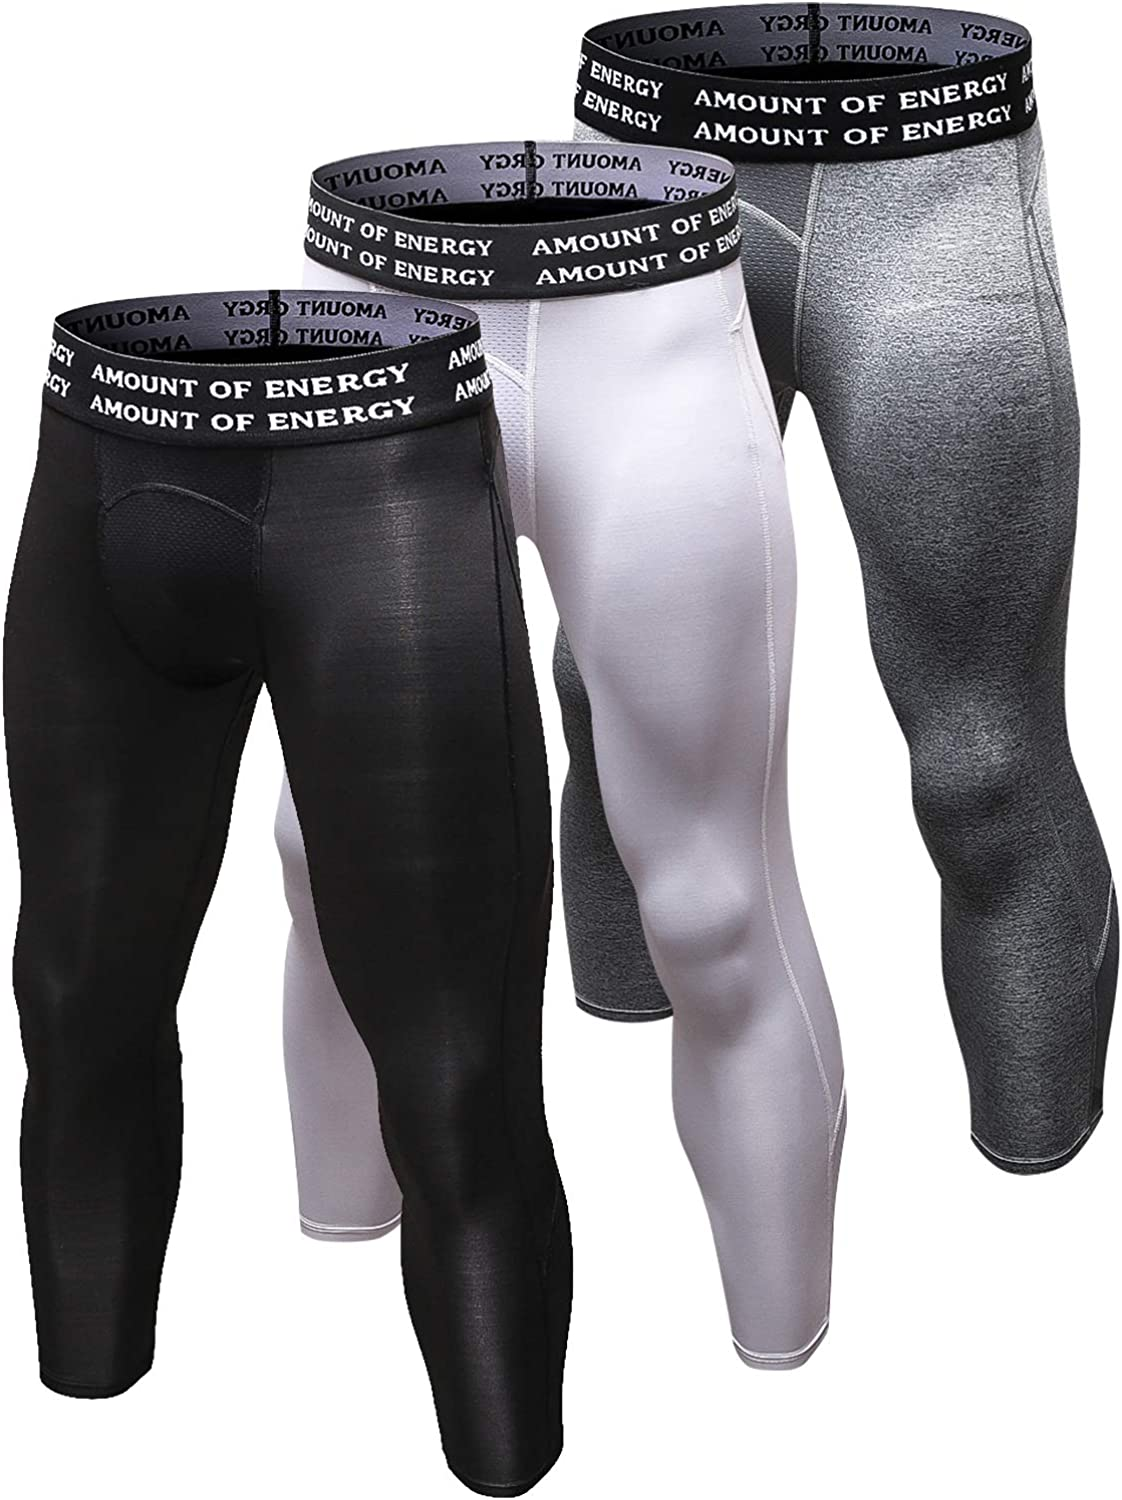 Queerier Men's 3/4 Compression Pants Dry Powerflex Sports Baselayer Pants Running Workout Tights Leggings